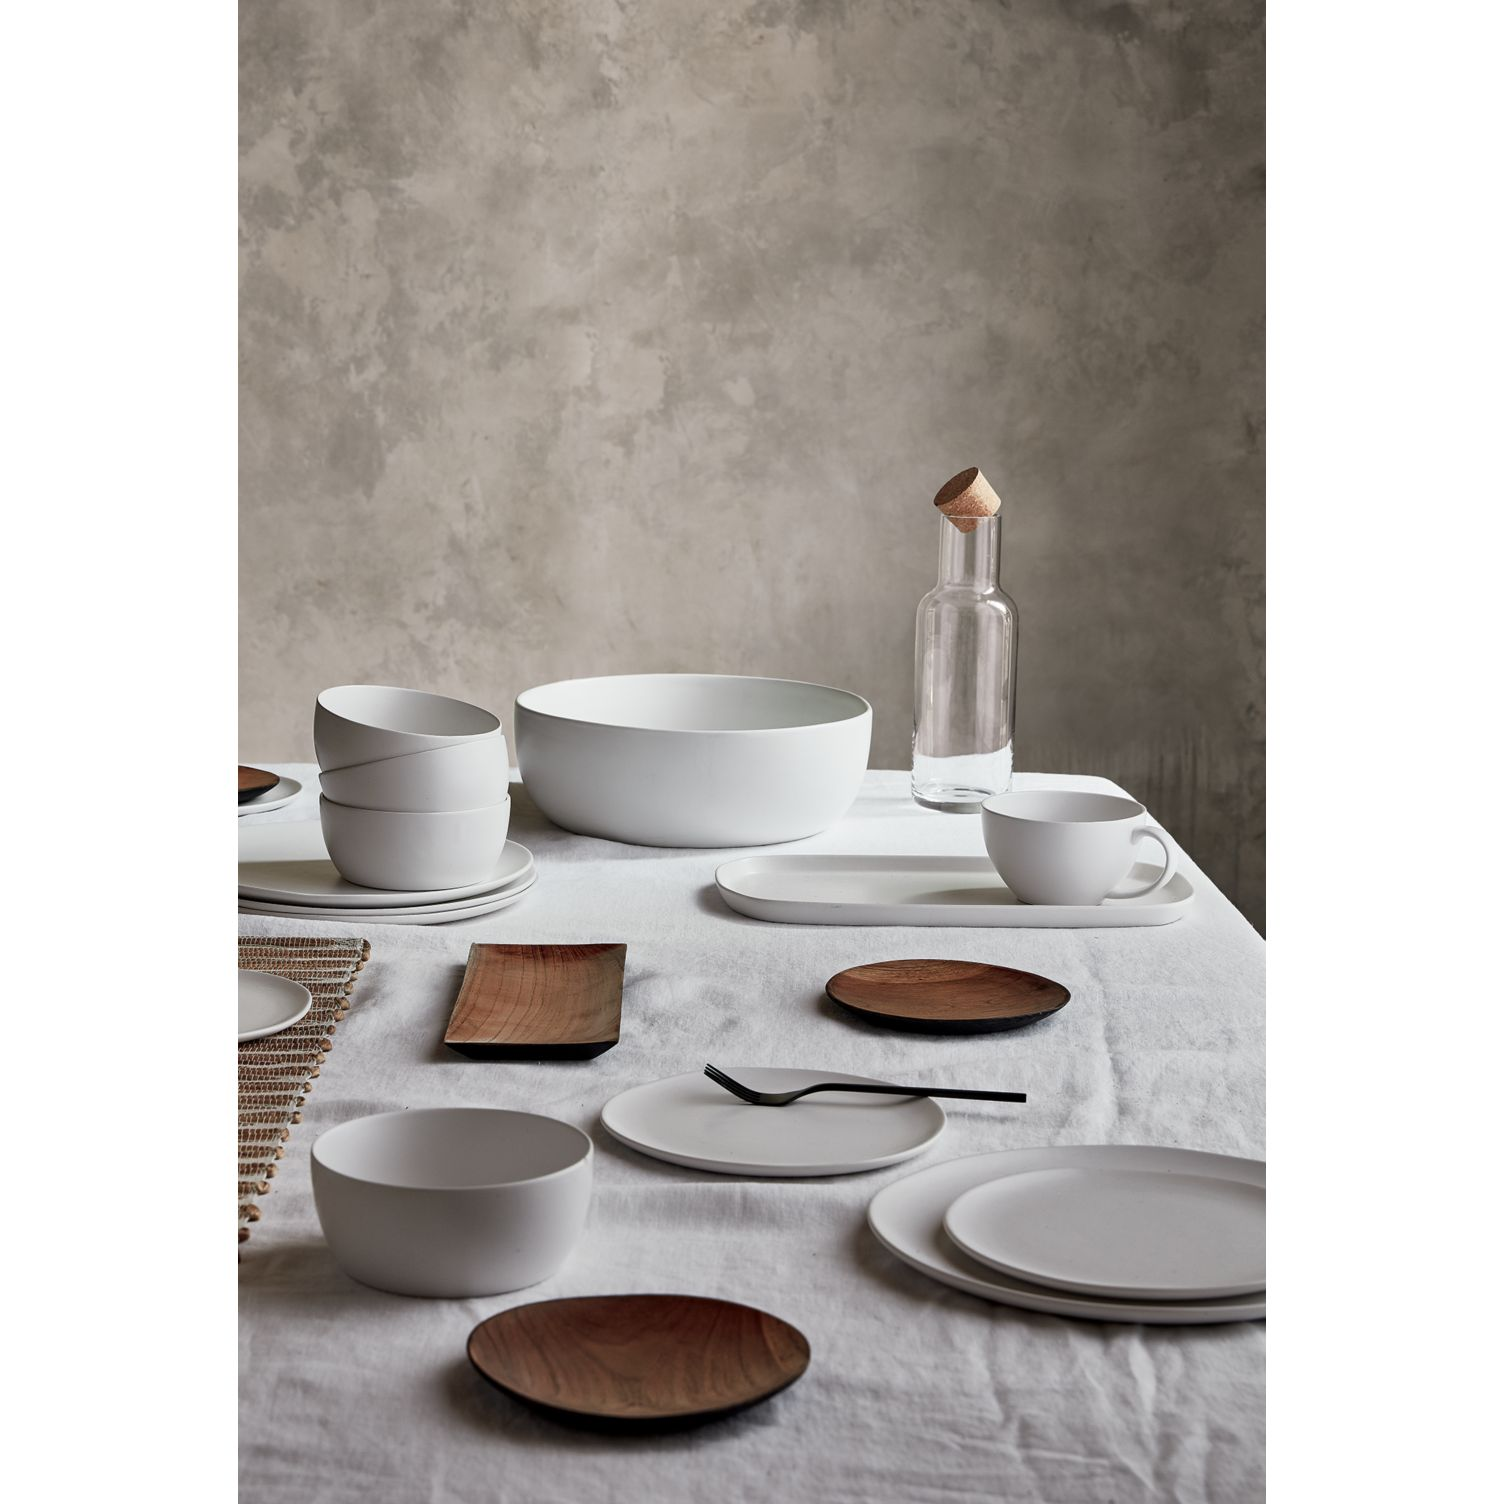 Tabletop pieces from CB2